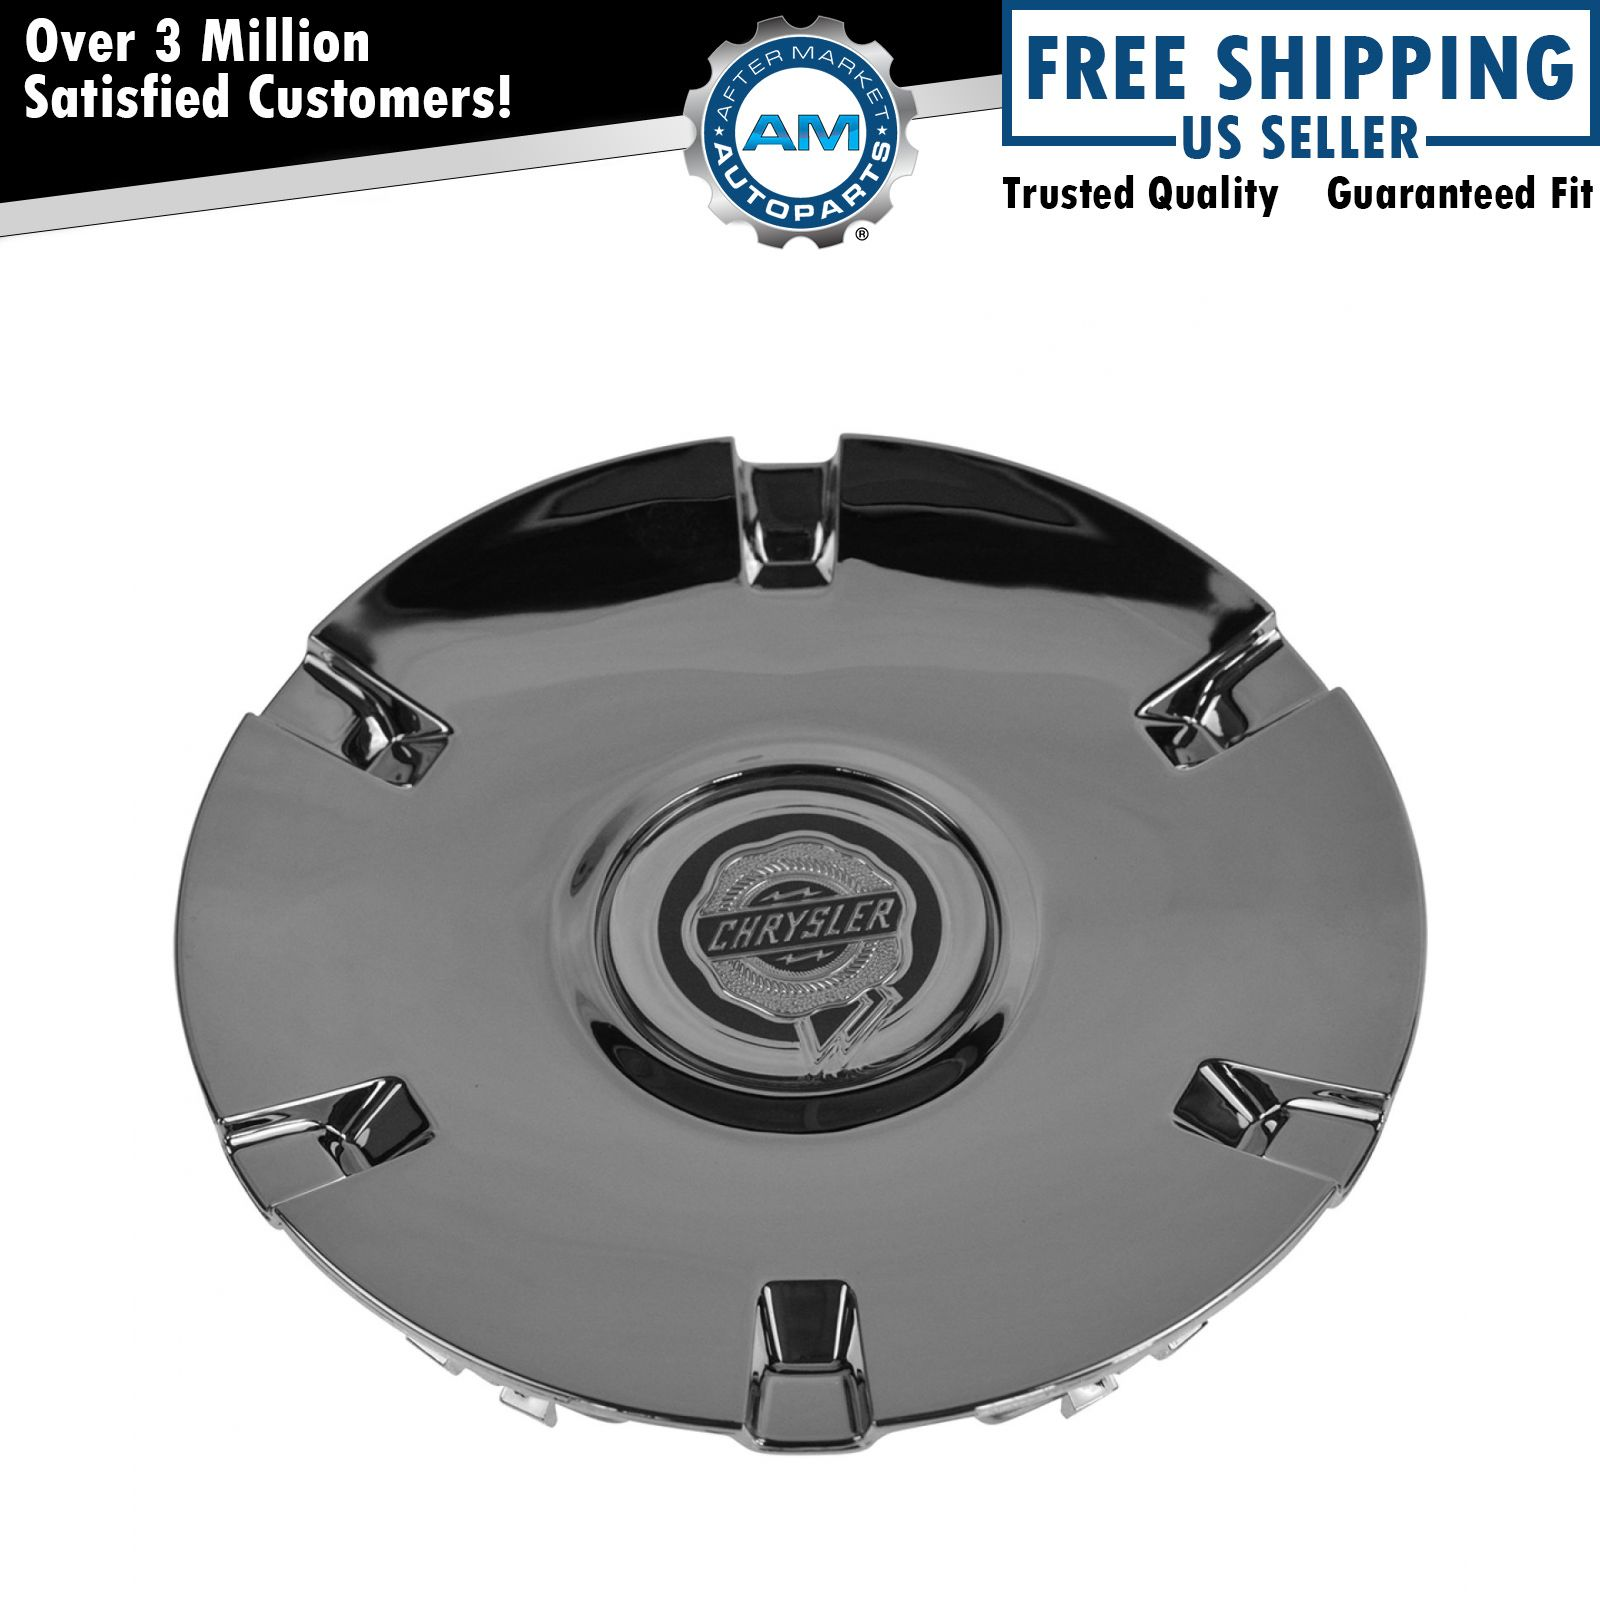 Chrysler Pacifica Rims For Sale: MOPAR Wheel Hub Center Cap For 04-06 Chrysler Pacifica